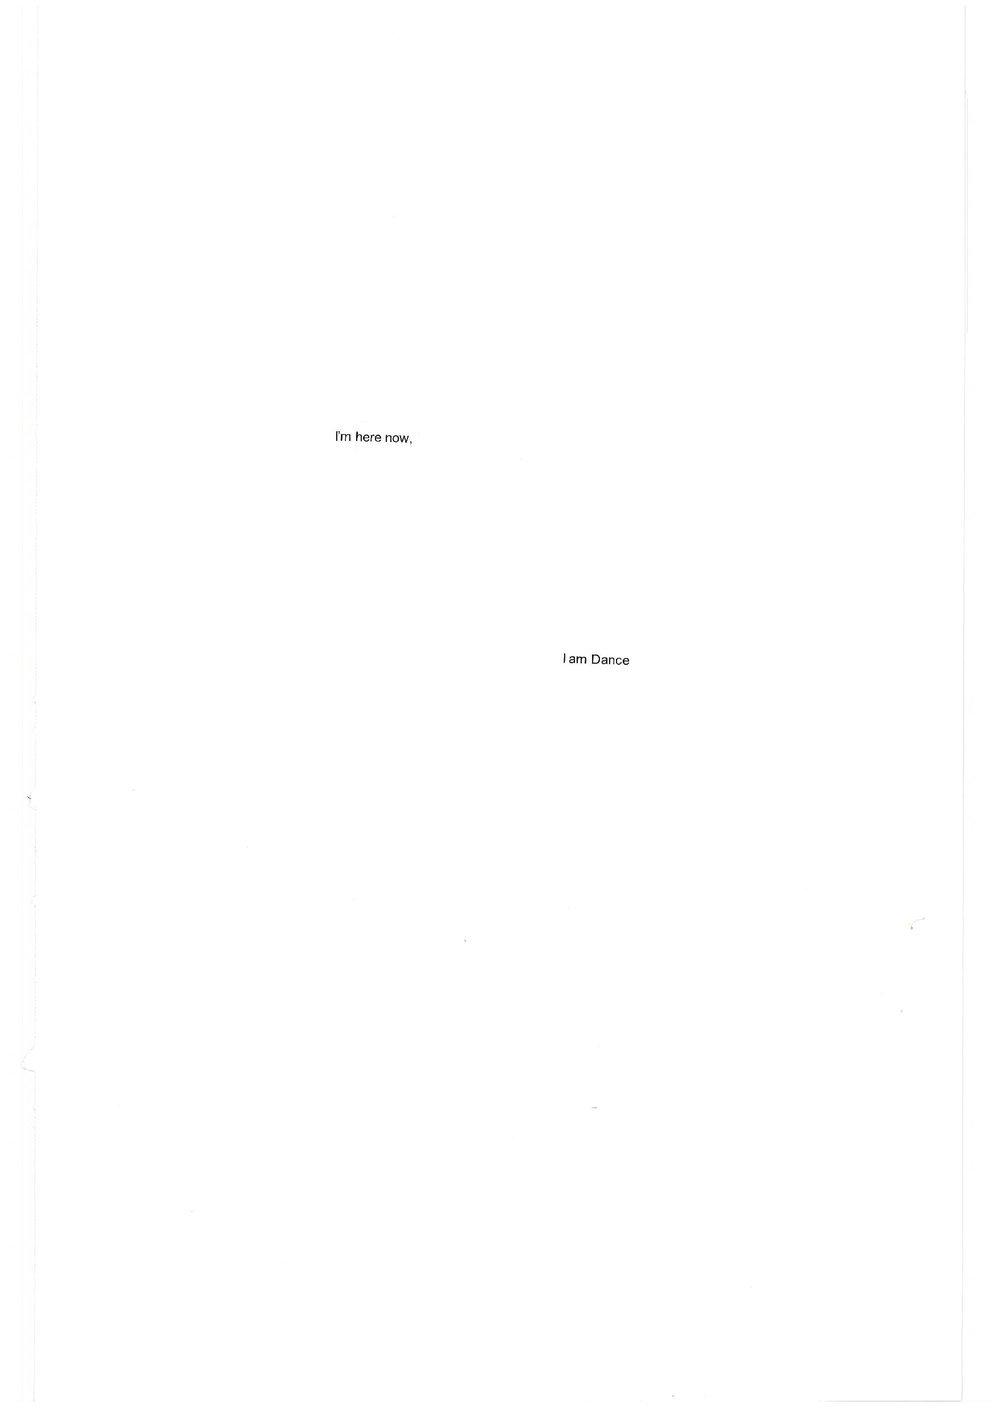 Emma-CeciliaAjanki Draft firstpages PAGE DANCE copy (dragged) 1-page-001.jpg